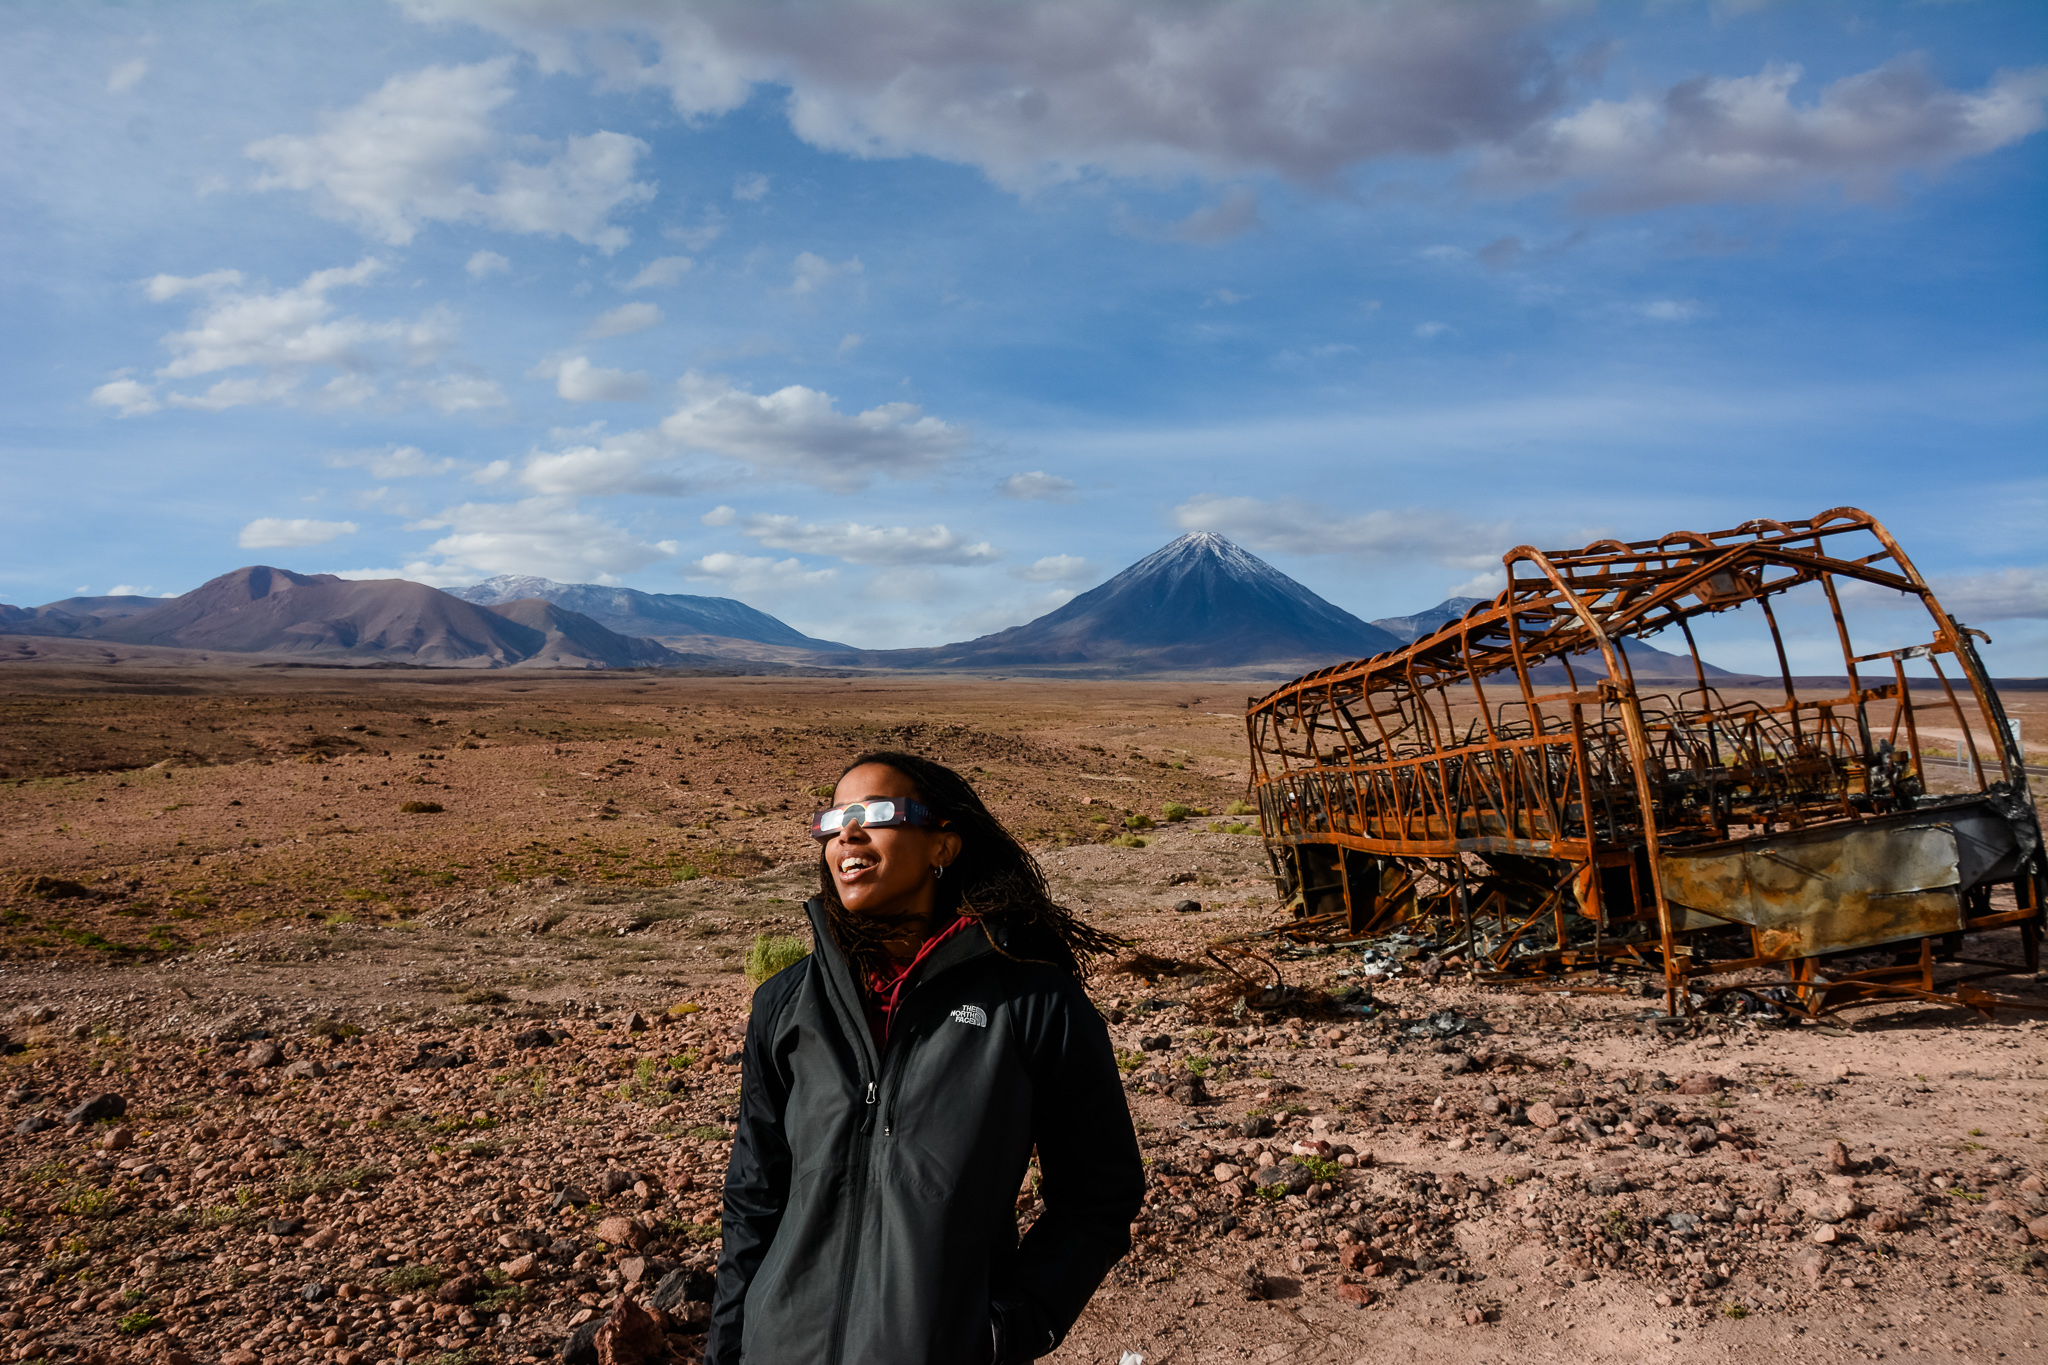 Atacama Desert - Outdoor Escape